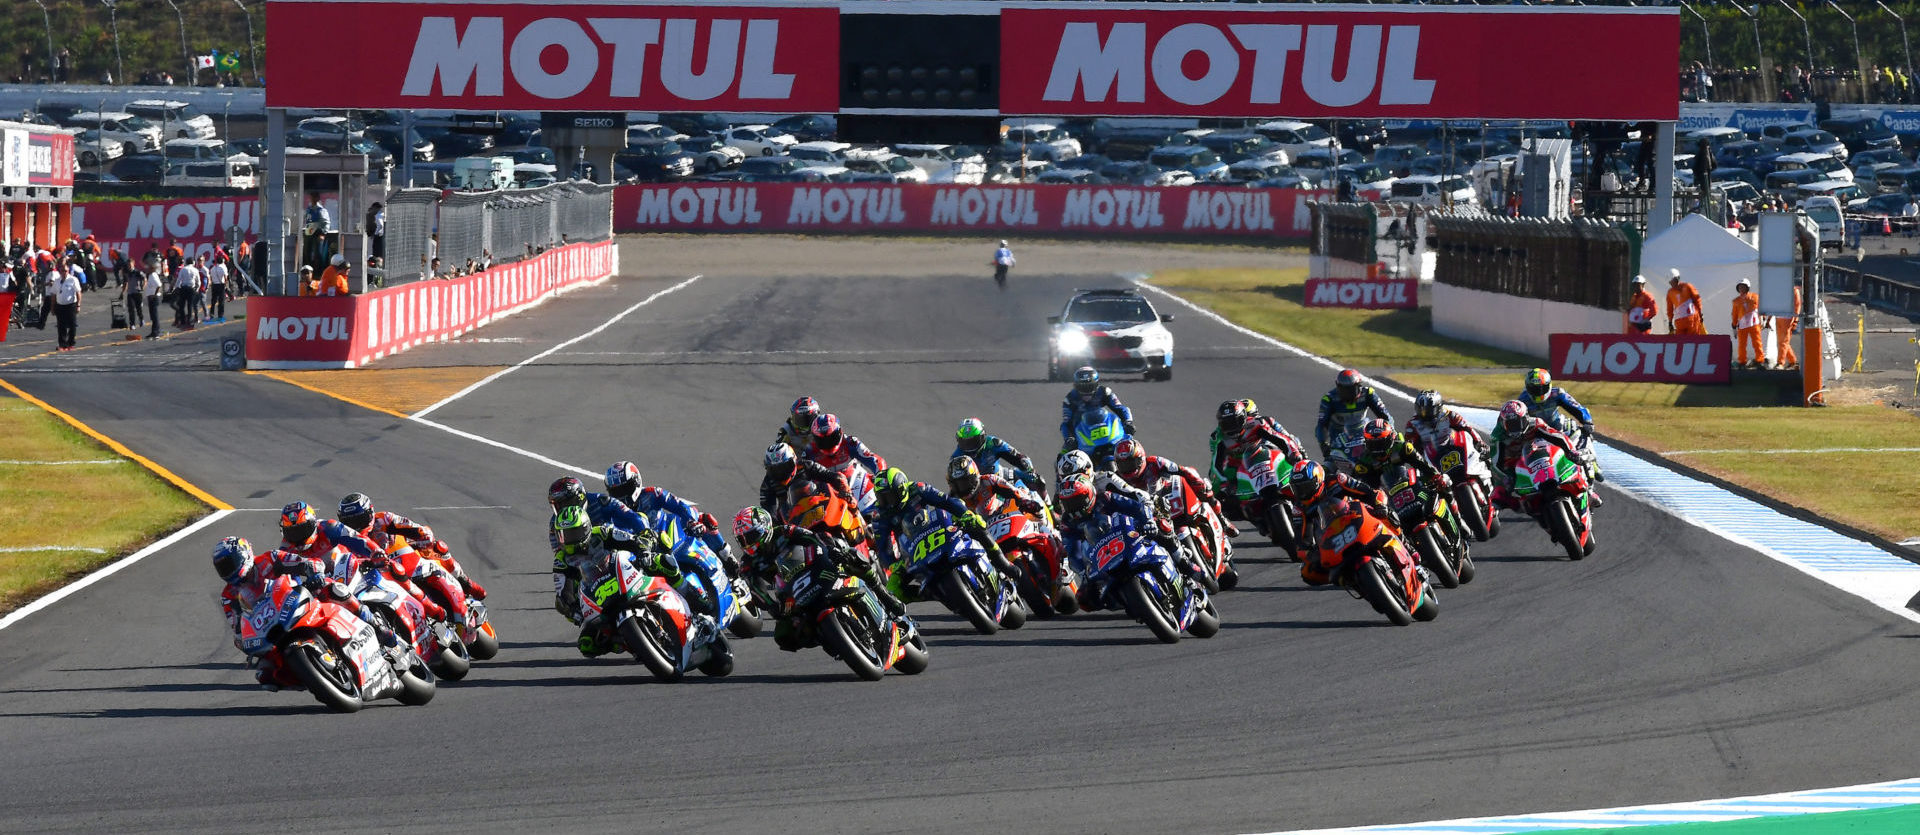 The start of the 2018 Japanese Grand Prix at Twin Ring Motegi. Photo courtesy of Michelin.